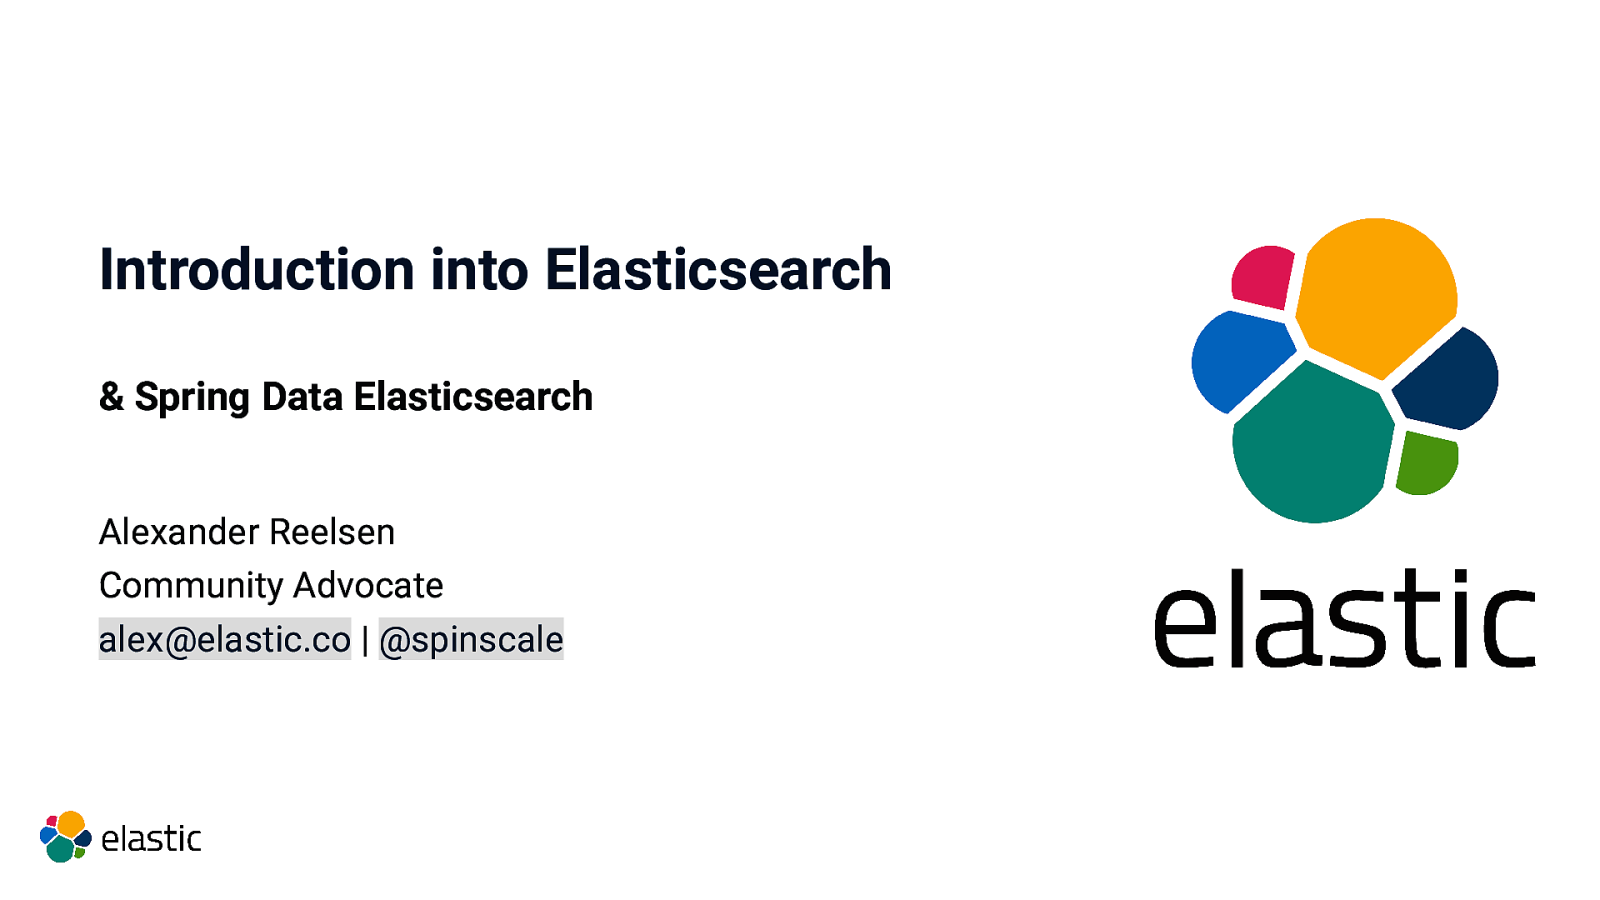 Introduction into Elasticsearch & Spring Data Elasticsearch